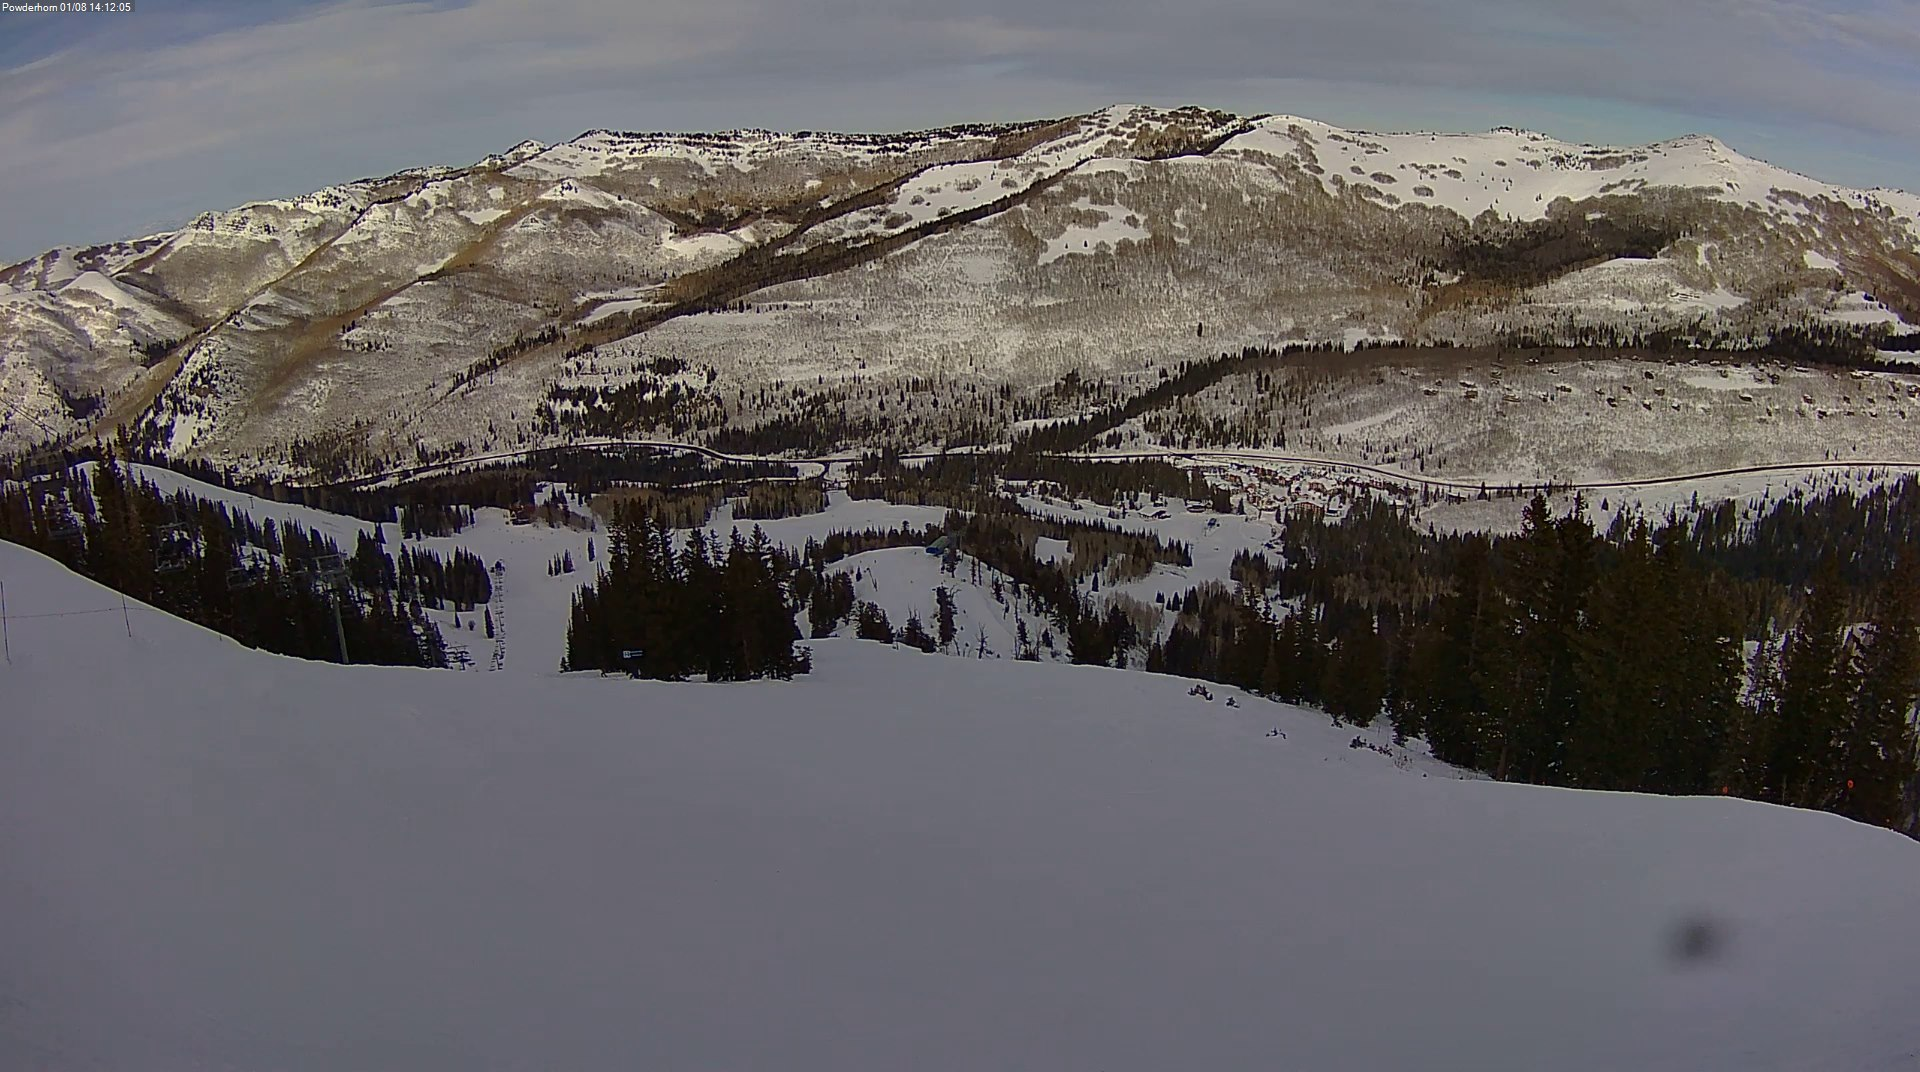 View from Powderhorn lift at Solitude Mountain Resort at 14:24 MST. Courtesy: https://webcams.solitudemountain.com